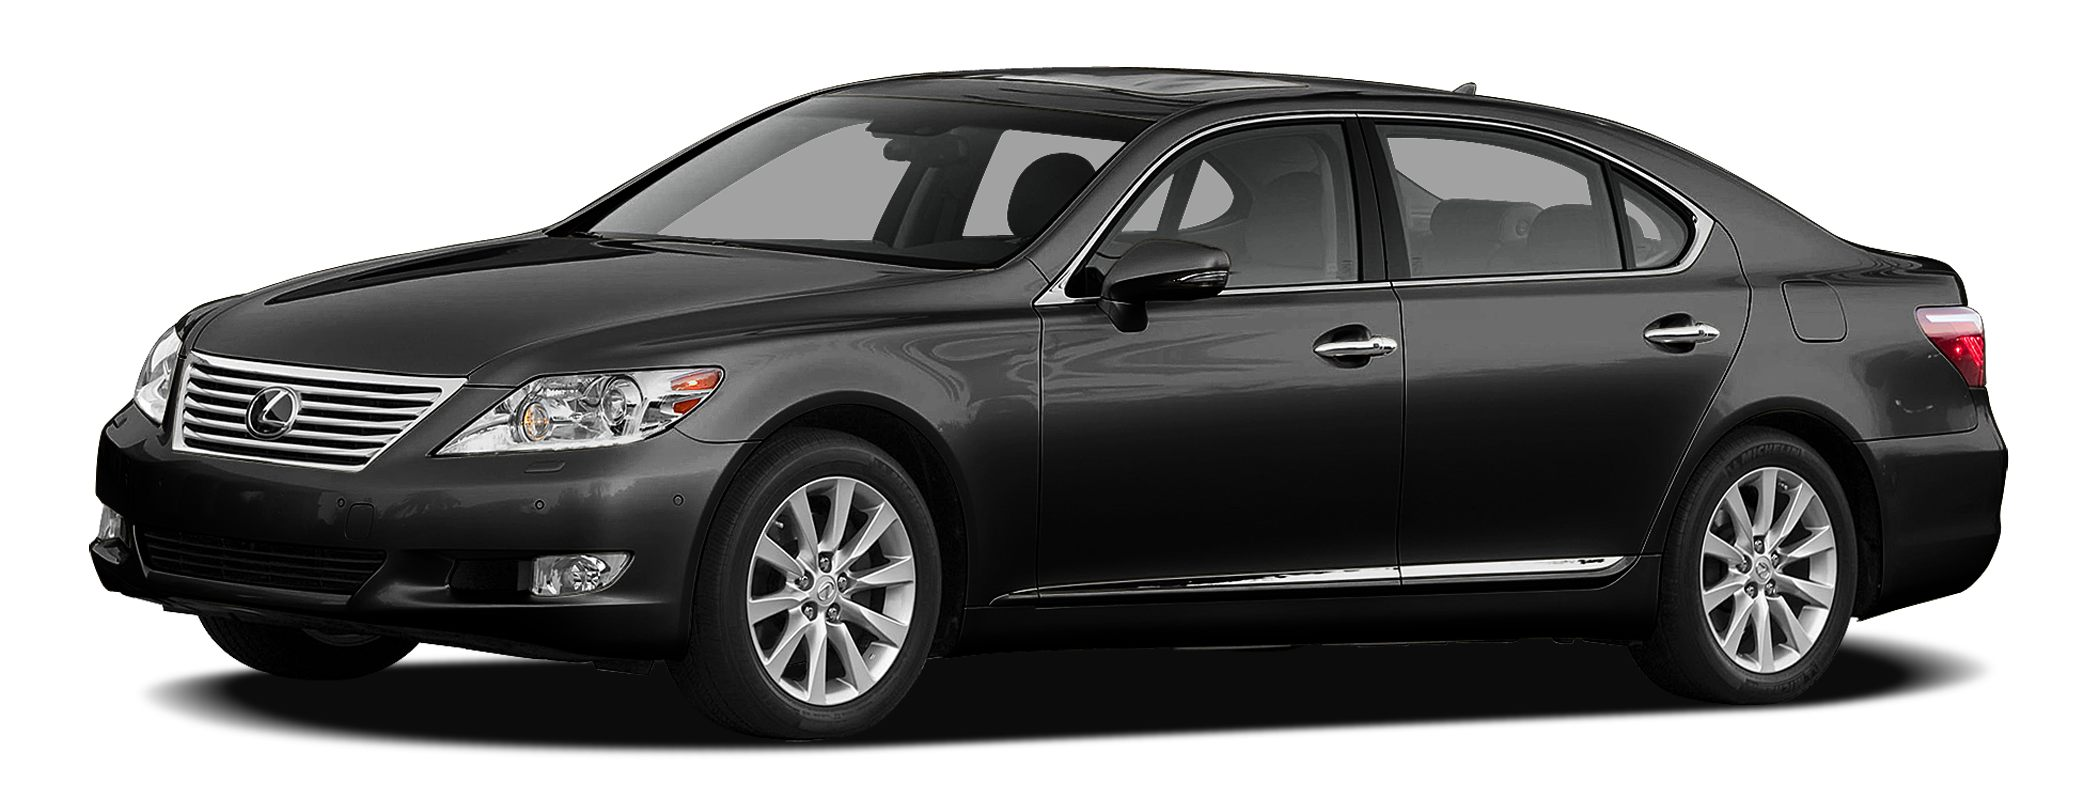 2011 Lexus LS 460 Base Haggle Free Price All wheel drive extra clean LS460 Navigation sport wh